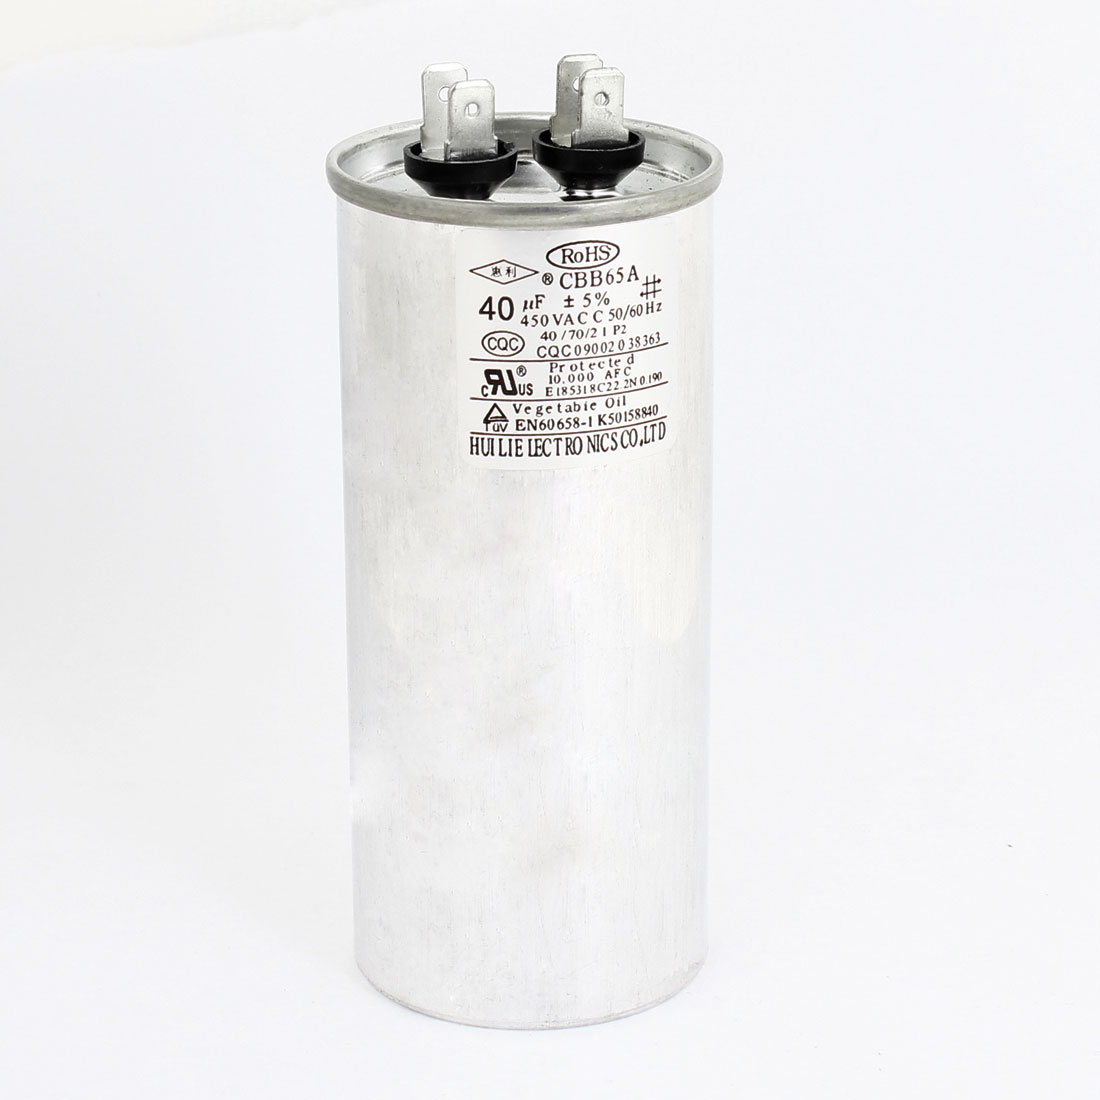 CBB65A AC450V 40uF Polypropylene Film Motor Run Capacitor for Air Conditioner